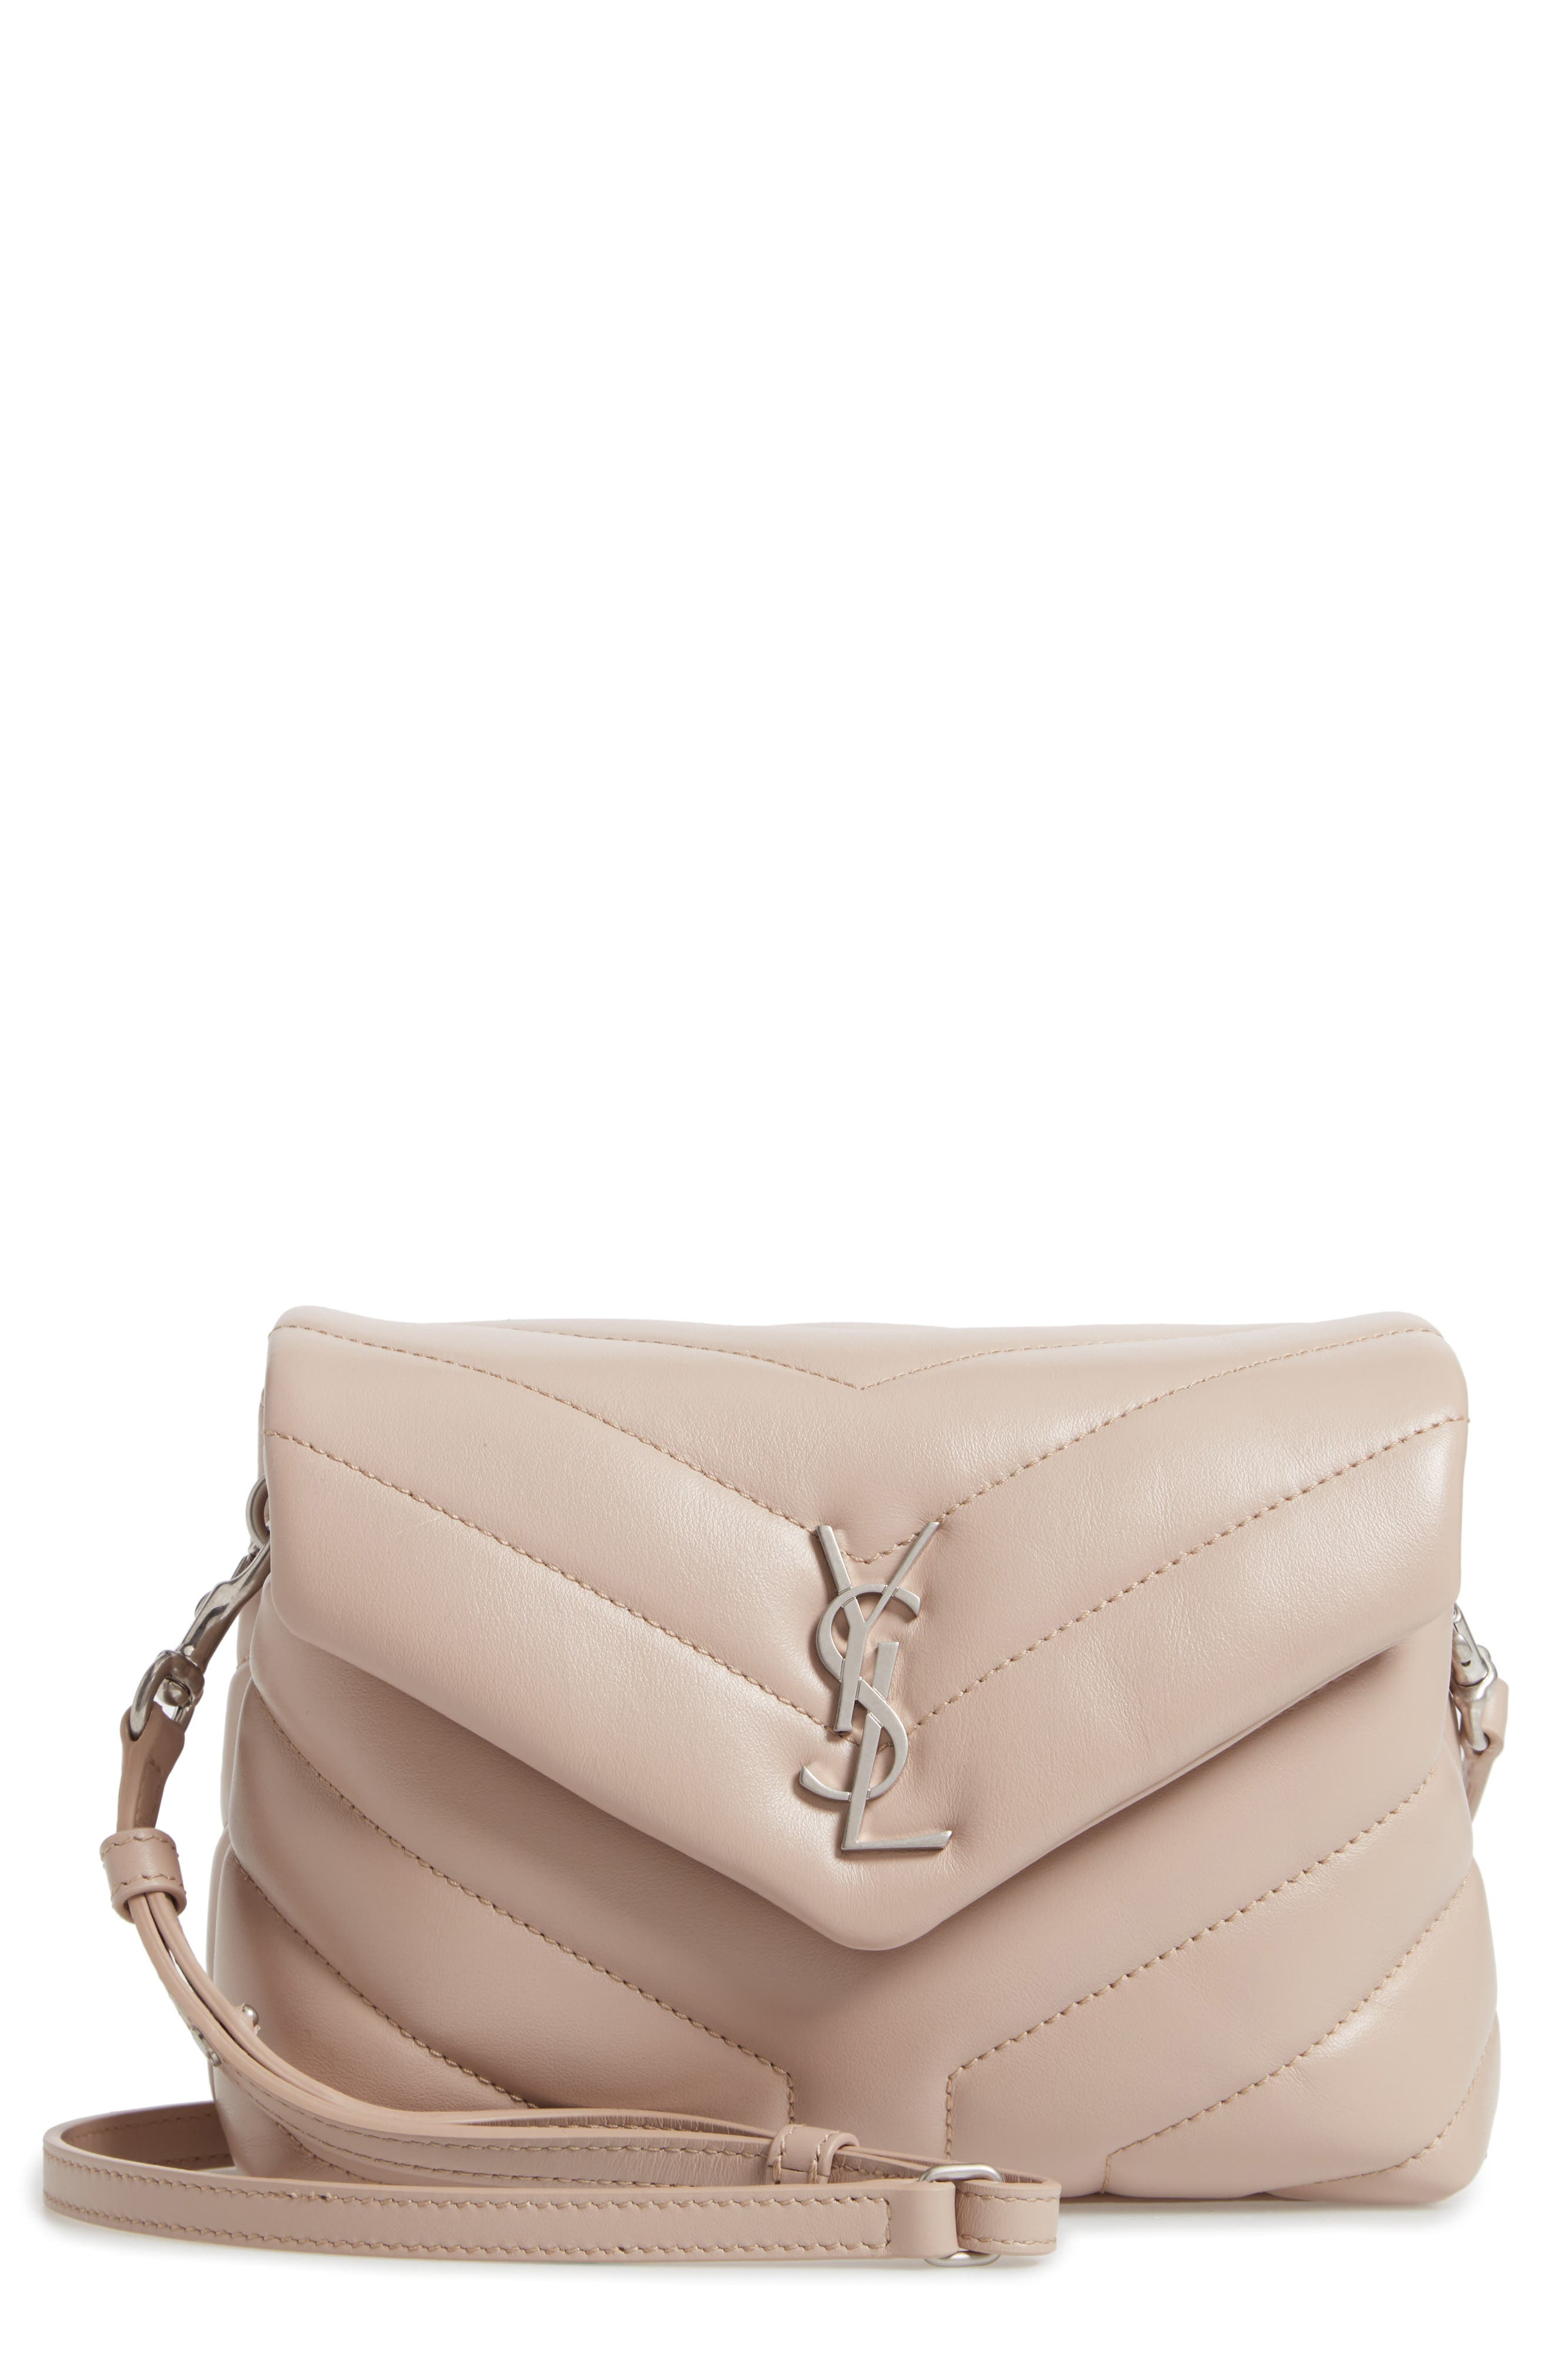 Toy Loulou Calfskin Leather Crossbody Bag in Light Natural